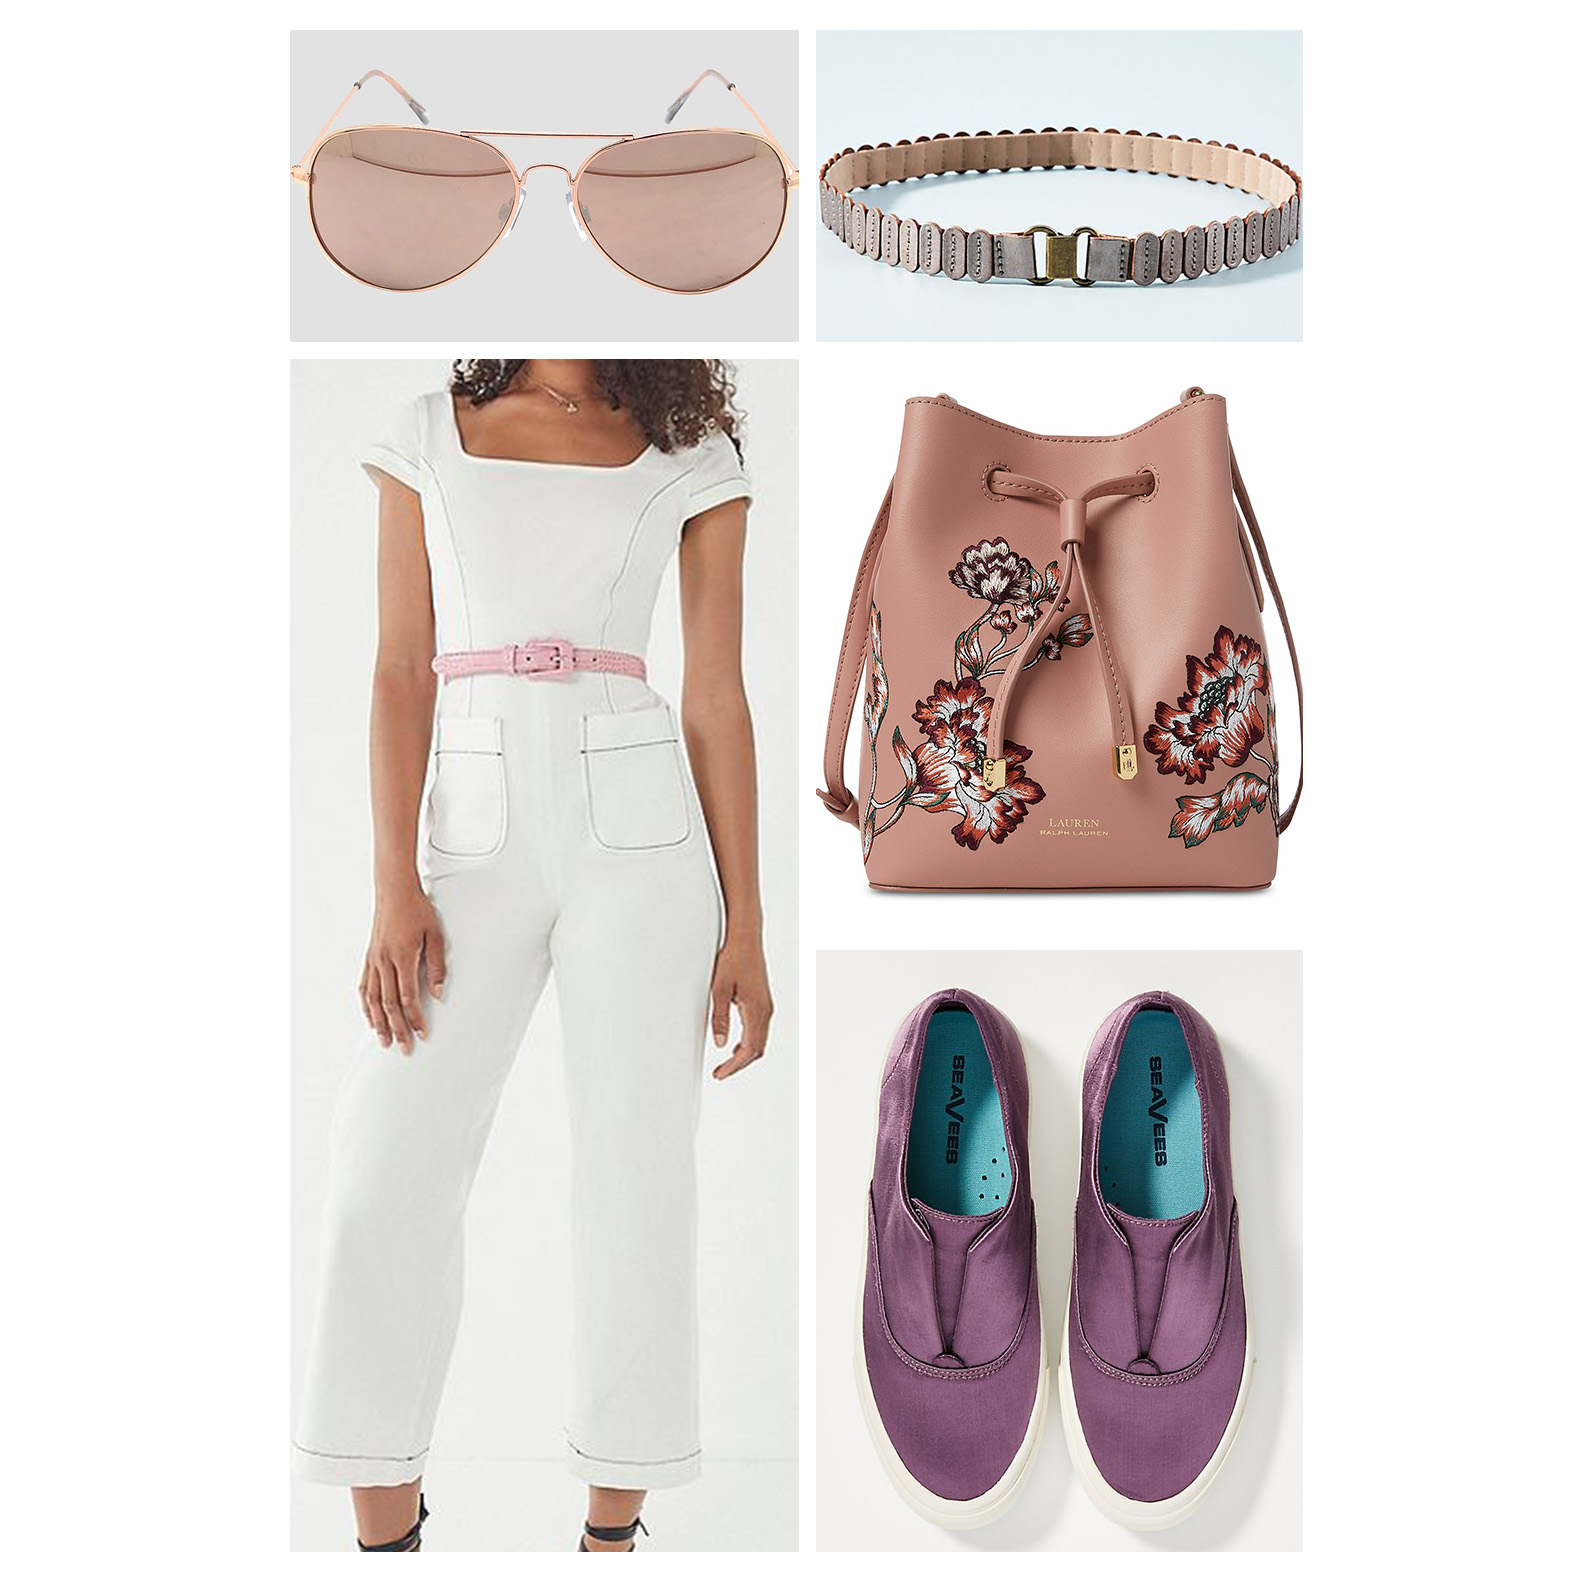 fall-autumn-outfit-lunch-2018-fashion-ideas-white-jumpsuit-aviator-sunglasses-purple-sneakers-floral-pink-handbag-belt-anthropologie-urbanoutfitters-daytime.jpg